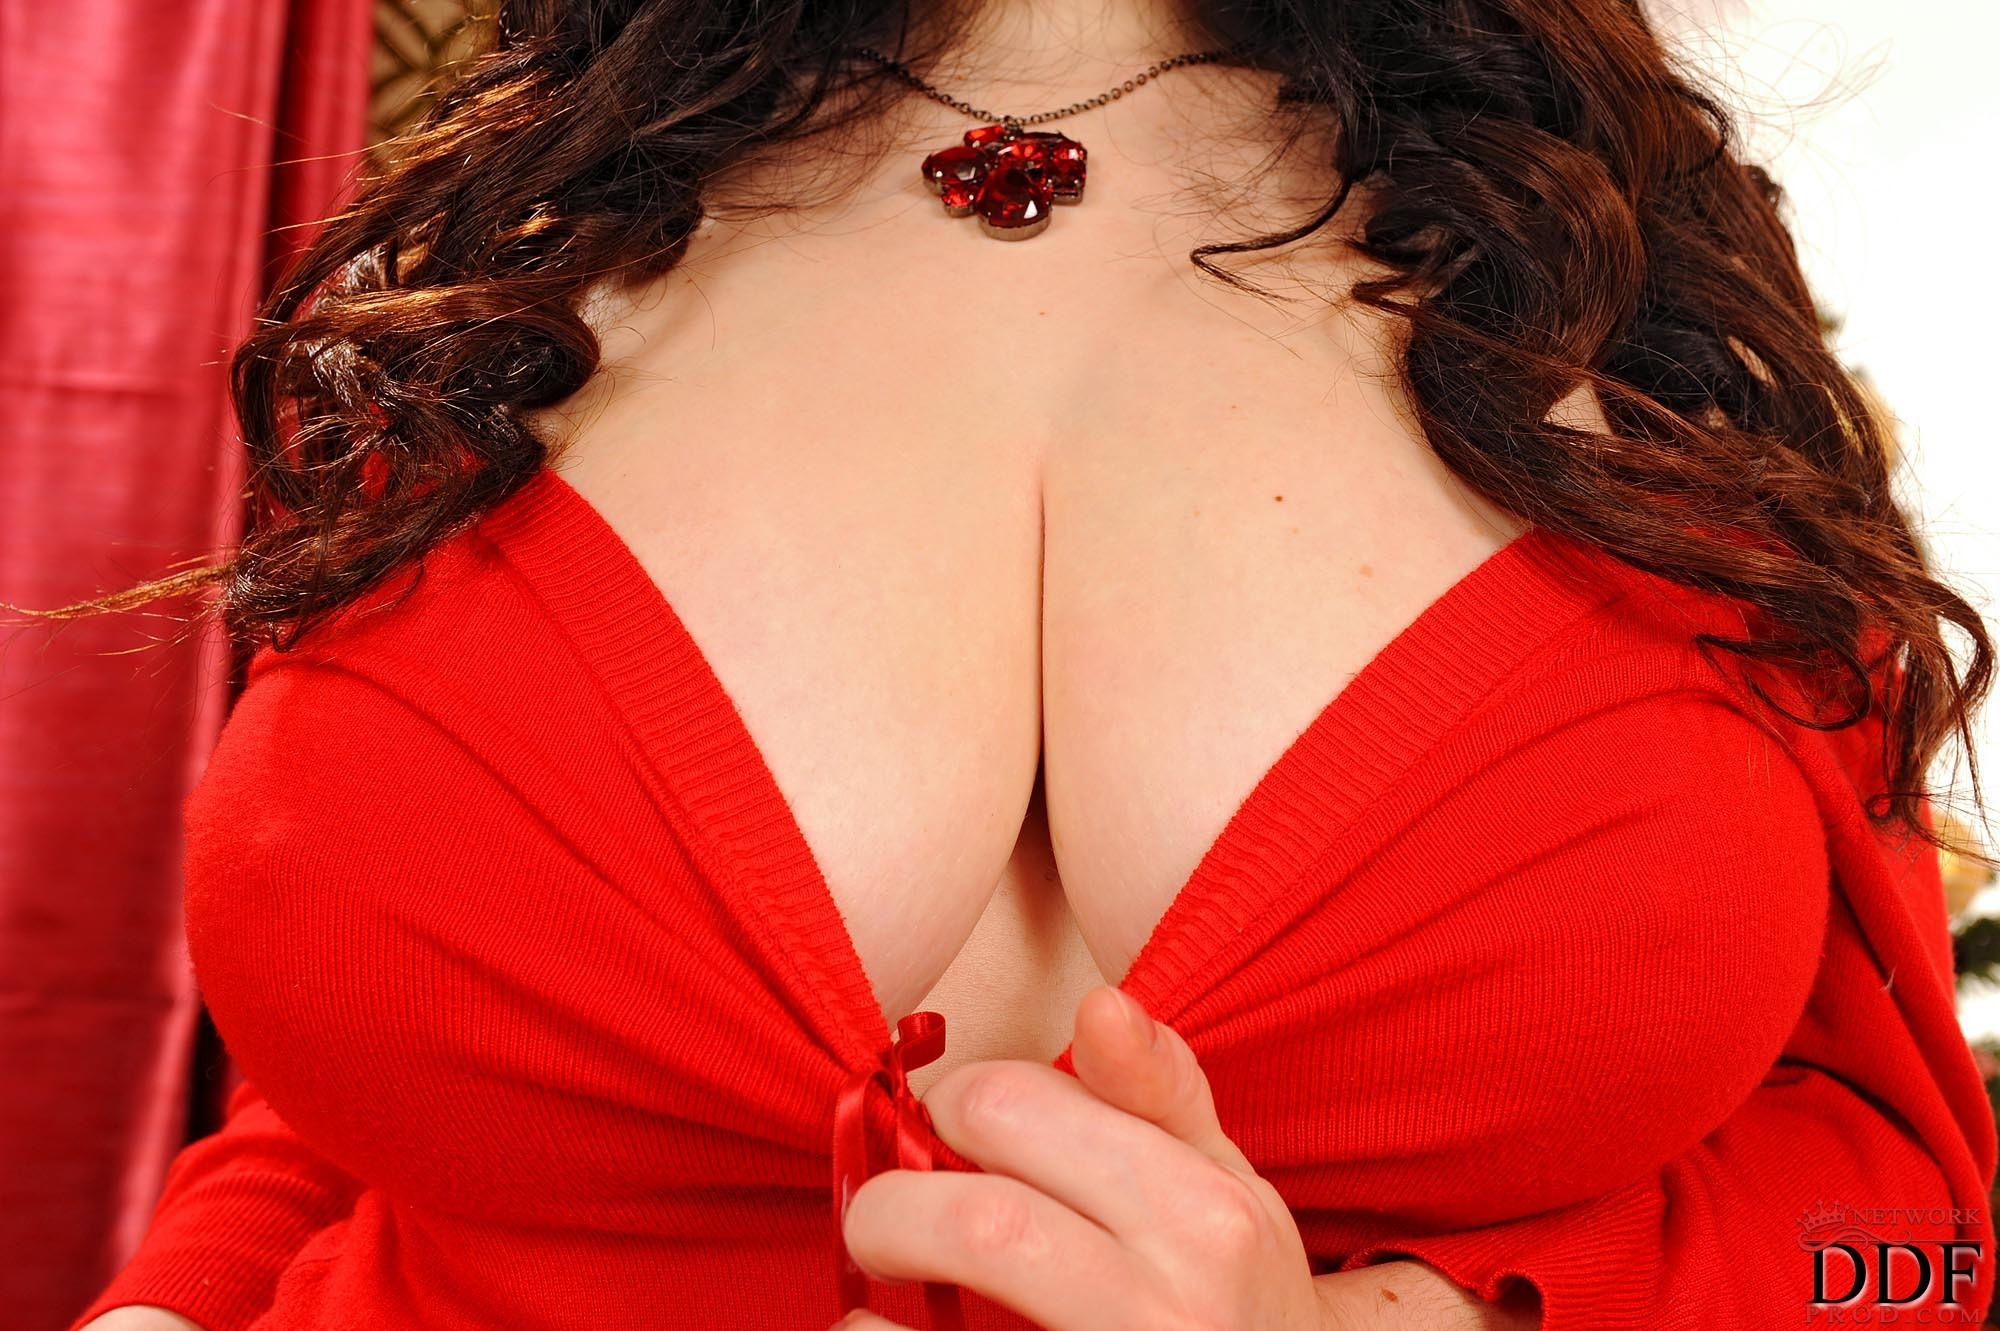 brunettes boobs woman red HD Wallpaper